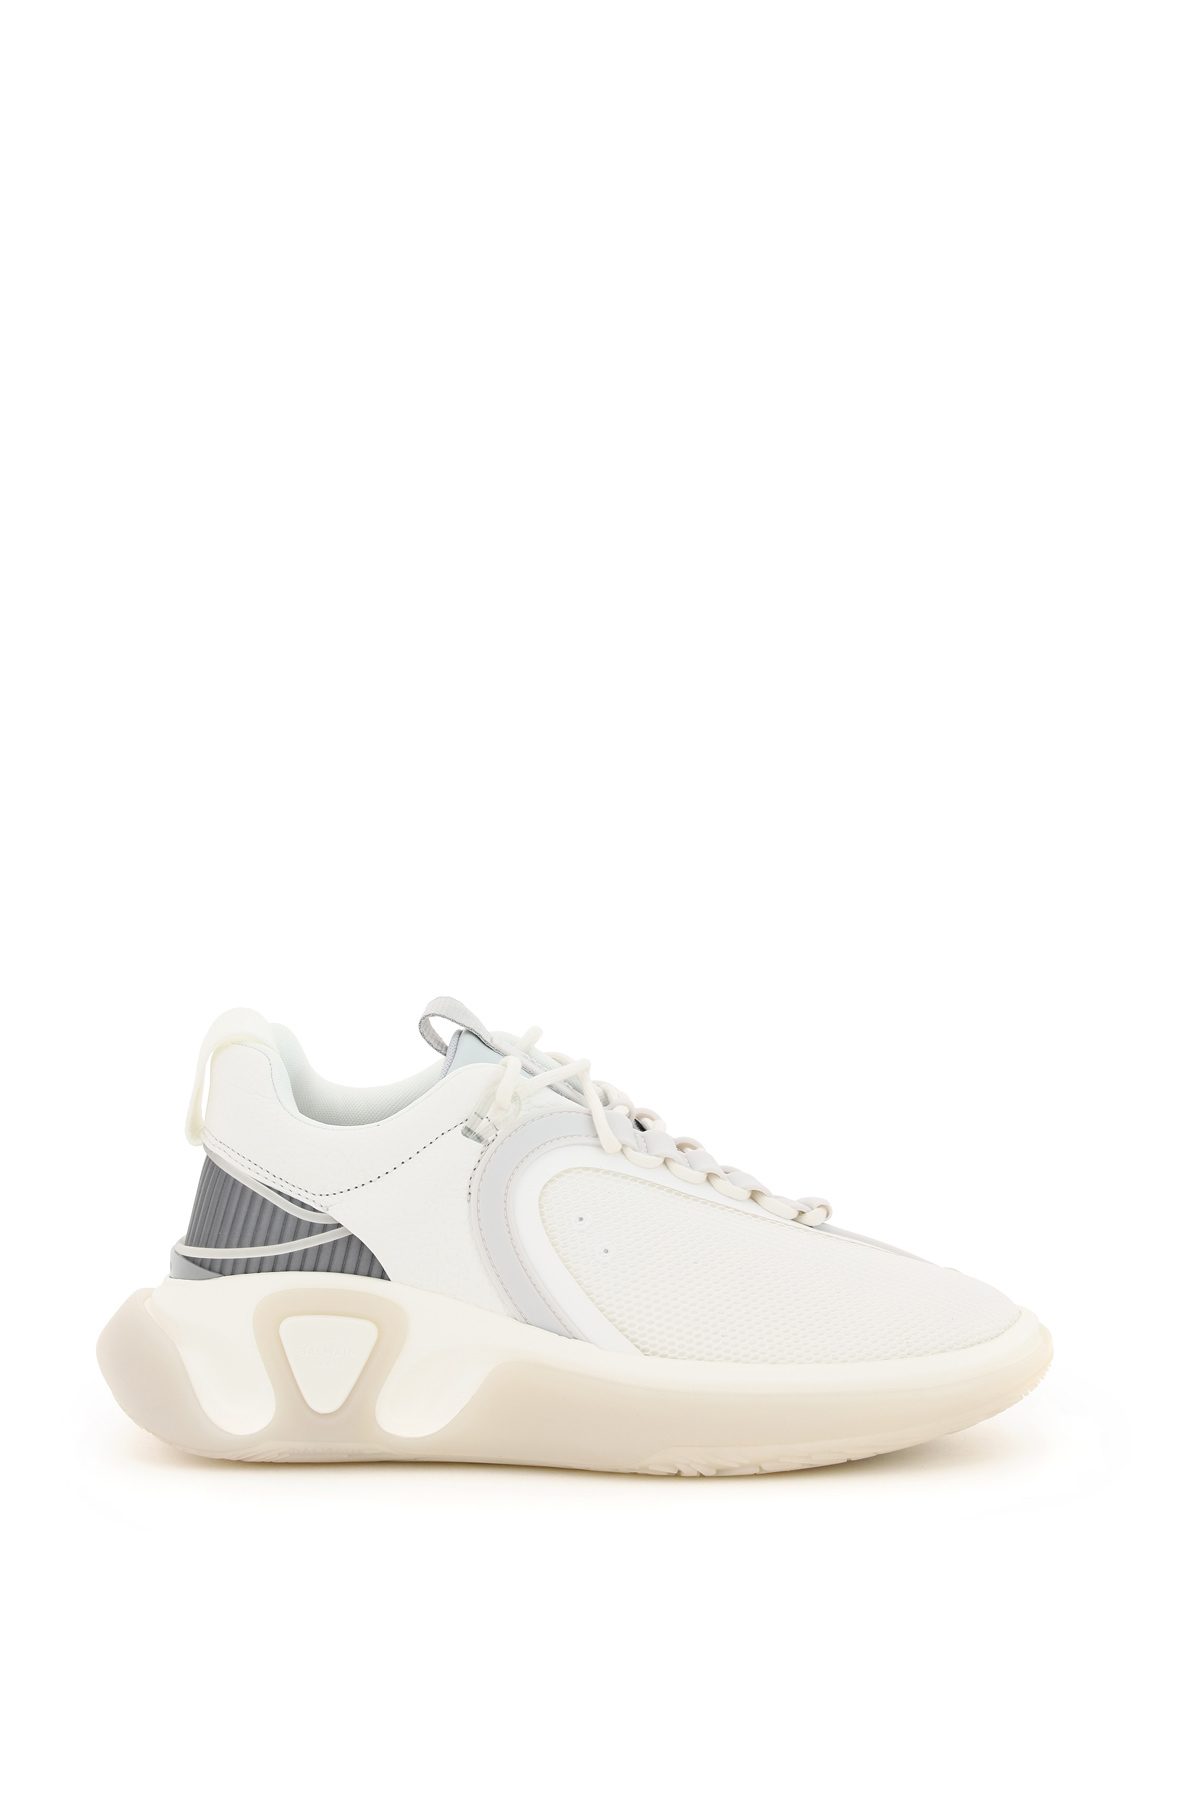 BALMAIN B RUNNER SNEAKERS 40 White, Grey Technical